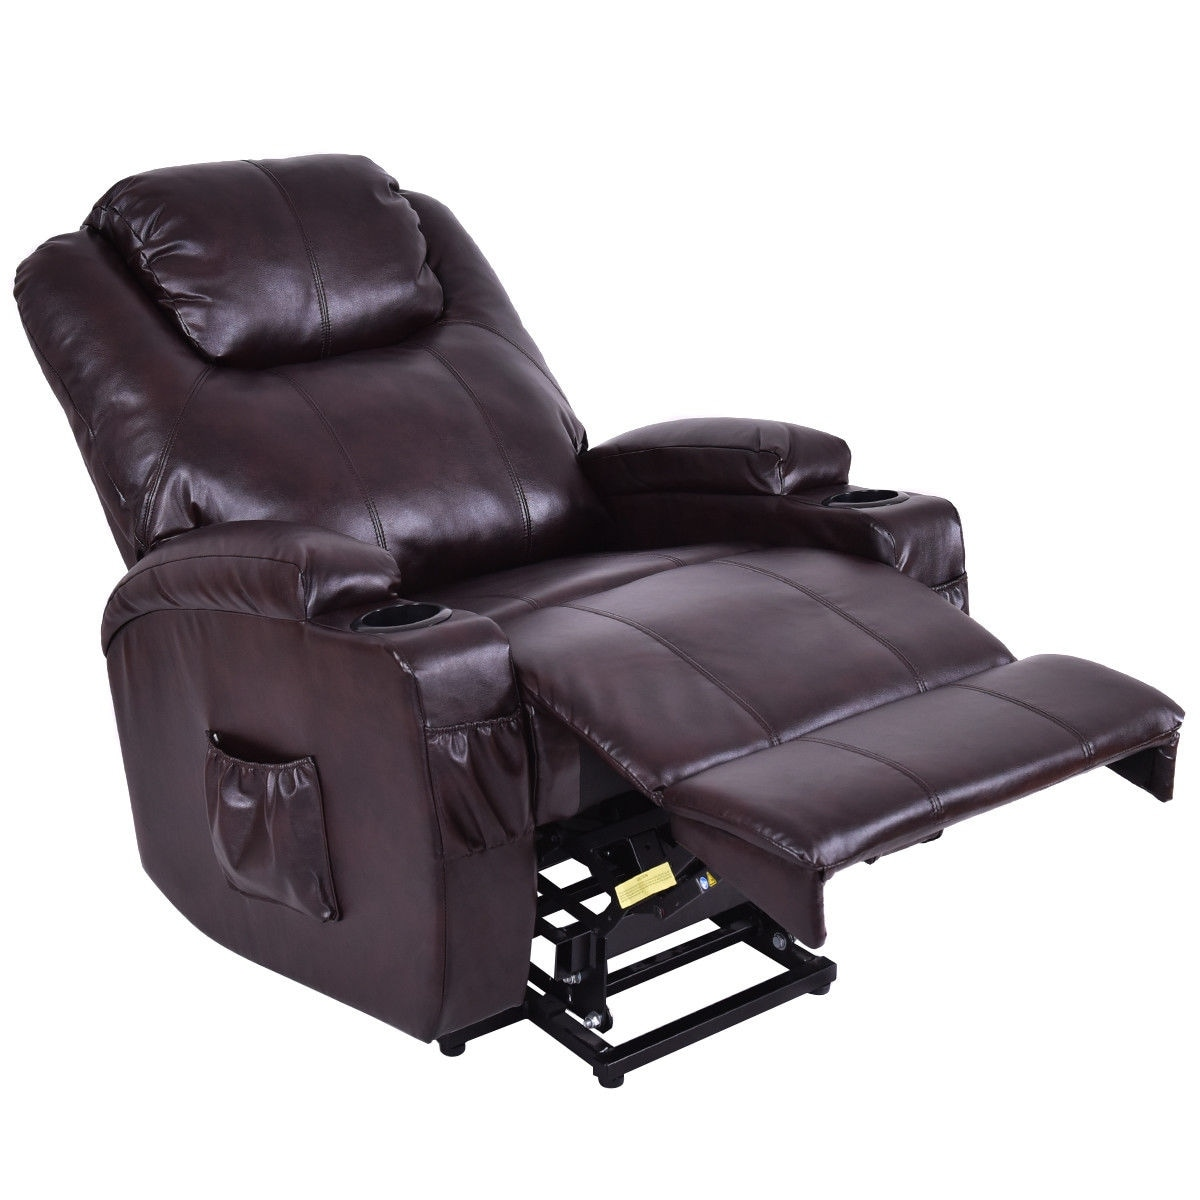 Shop Costway Lift Chair Electric Power Recliner Wremote And Cup